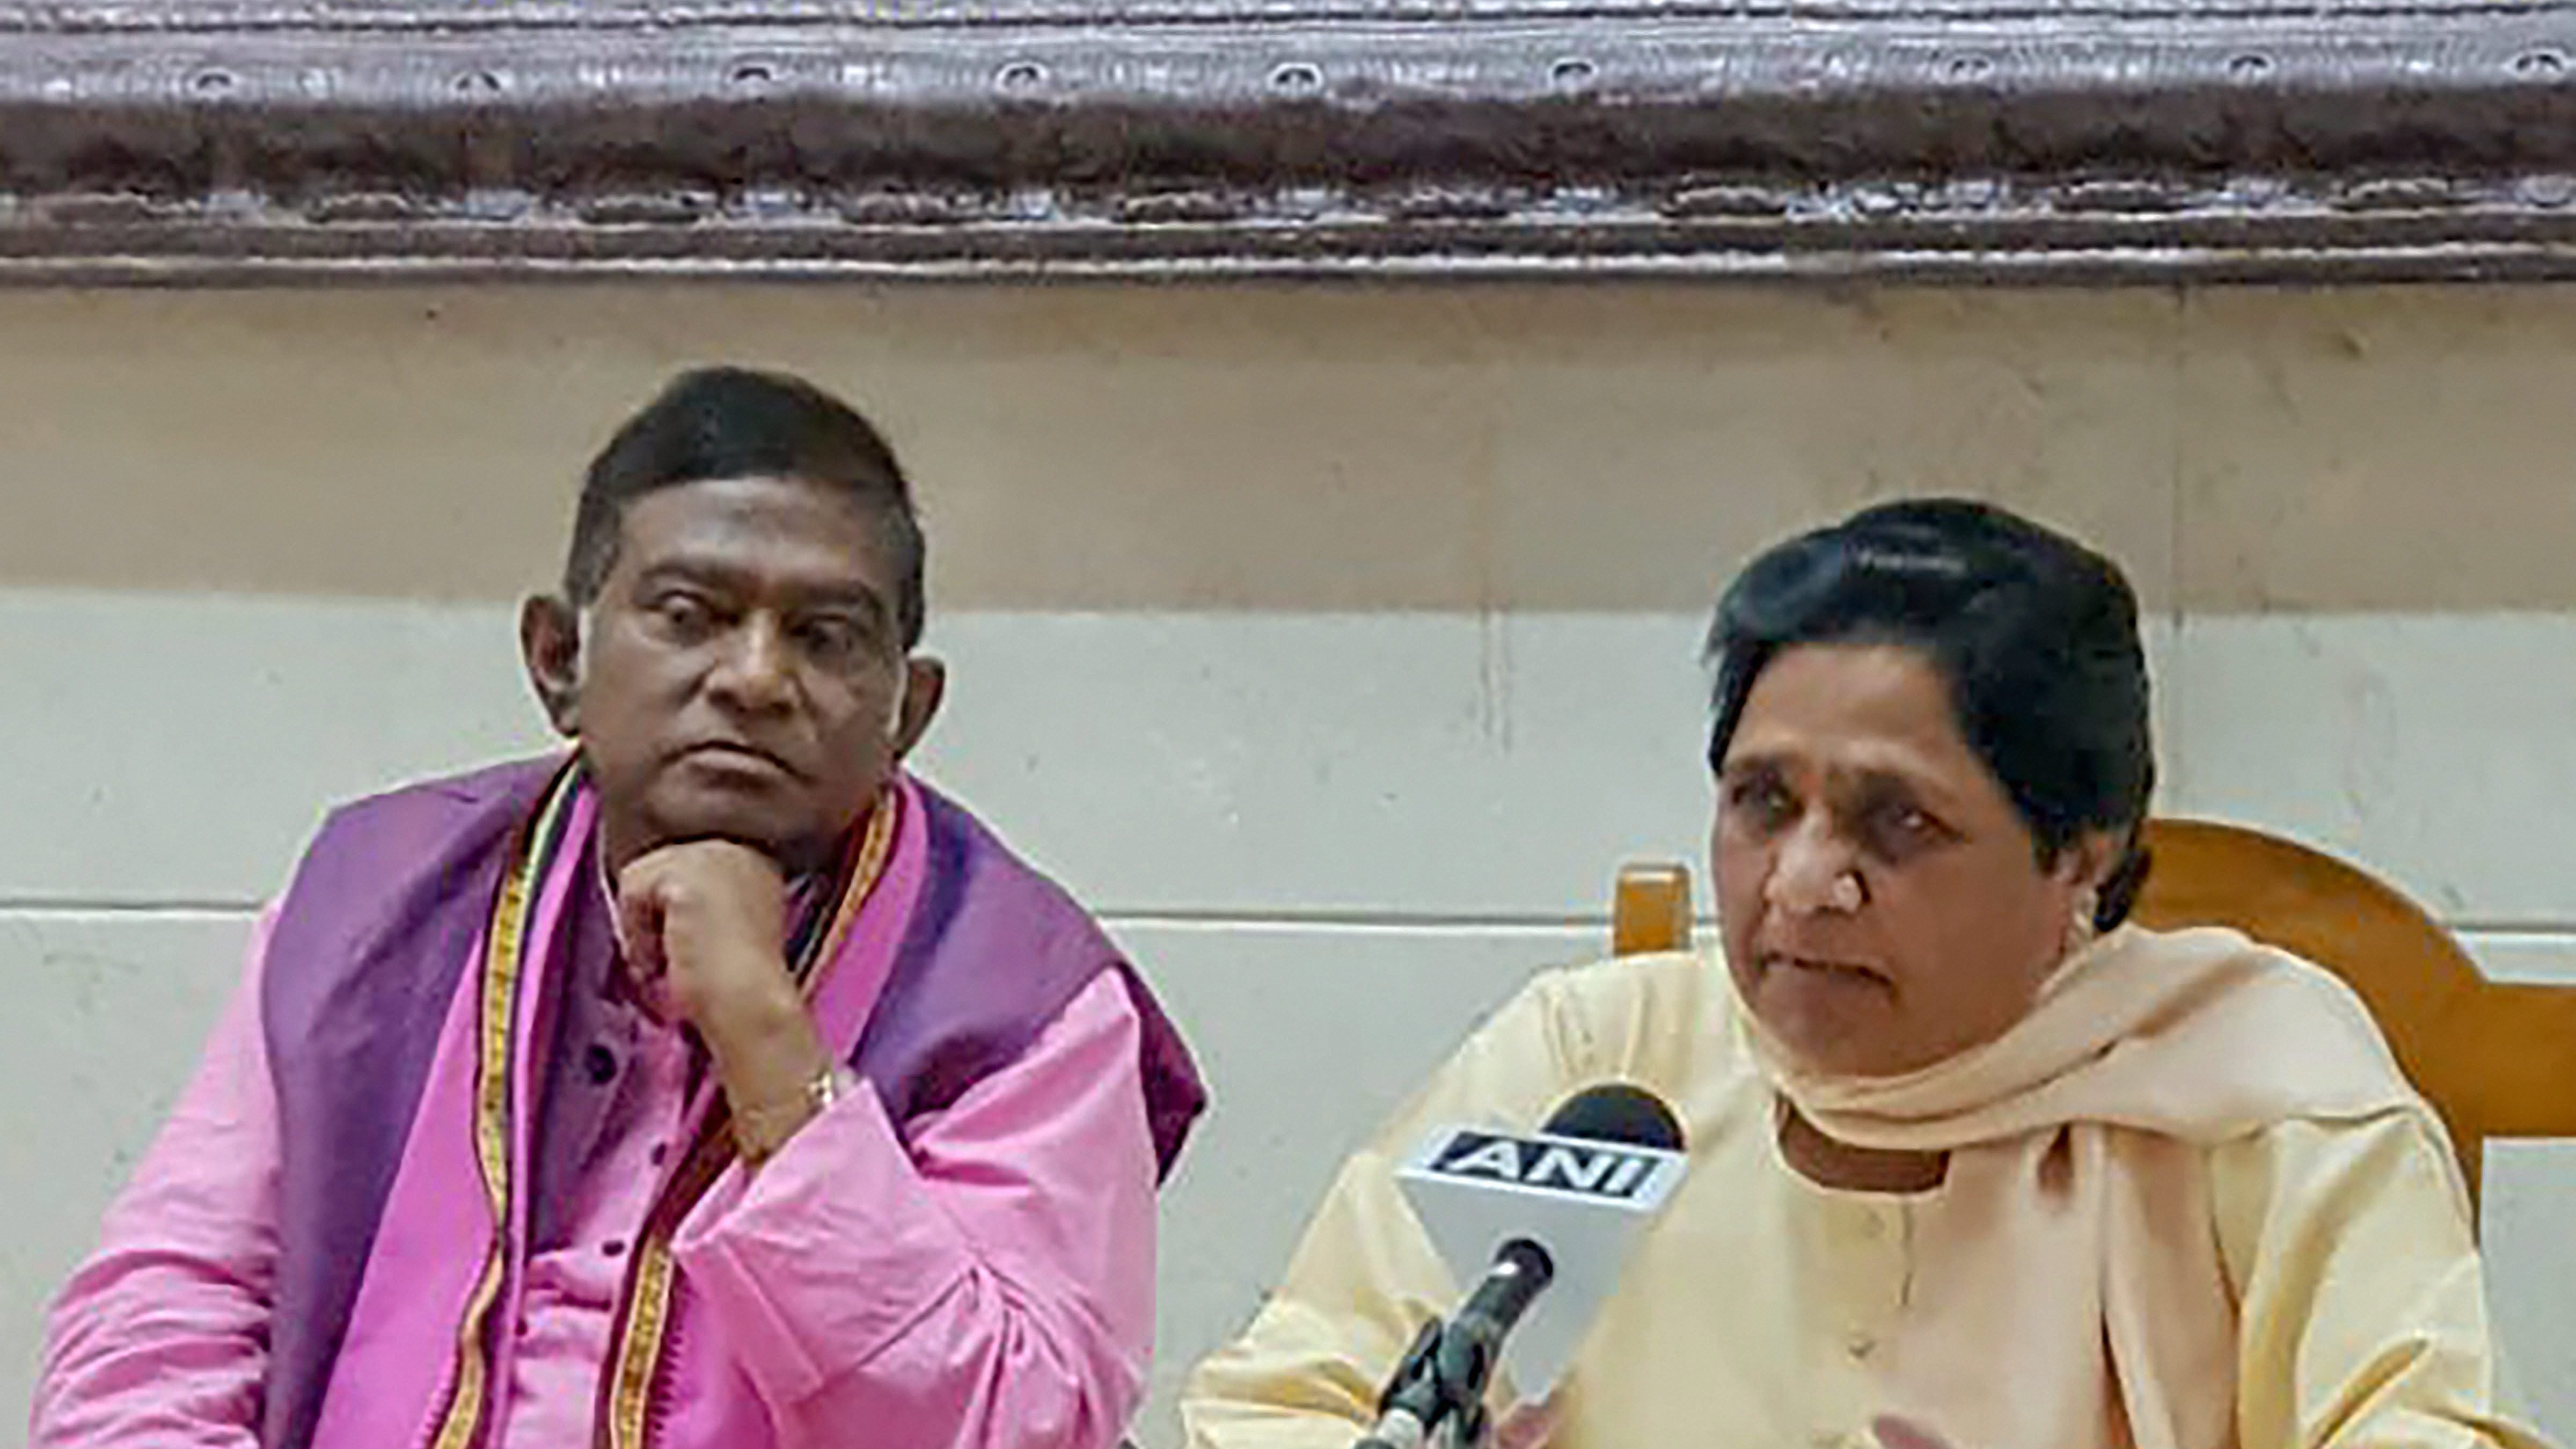 Ajit Jogi and Mayawati at the news conference in Lucknow on September 20 where they announced their alliance for elections in Chhattisgarh.